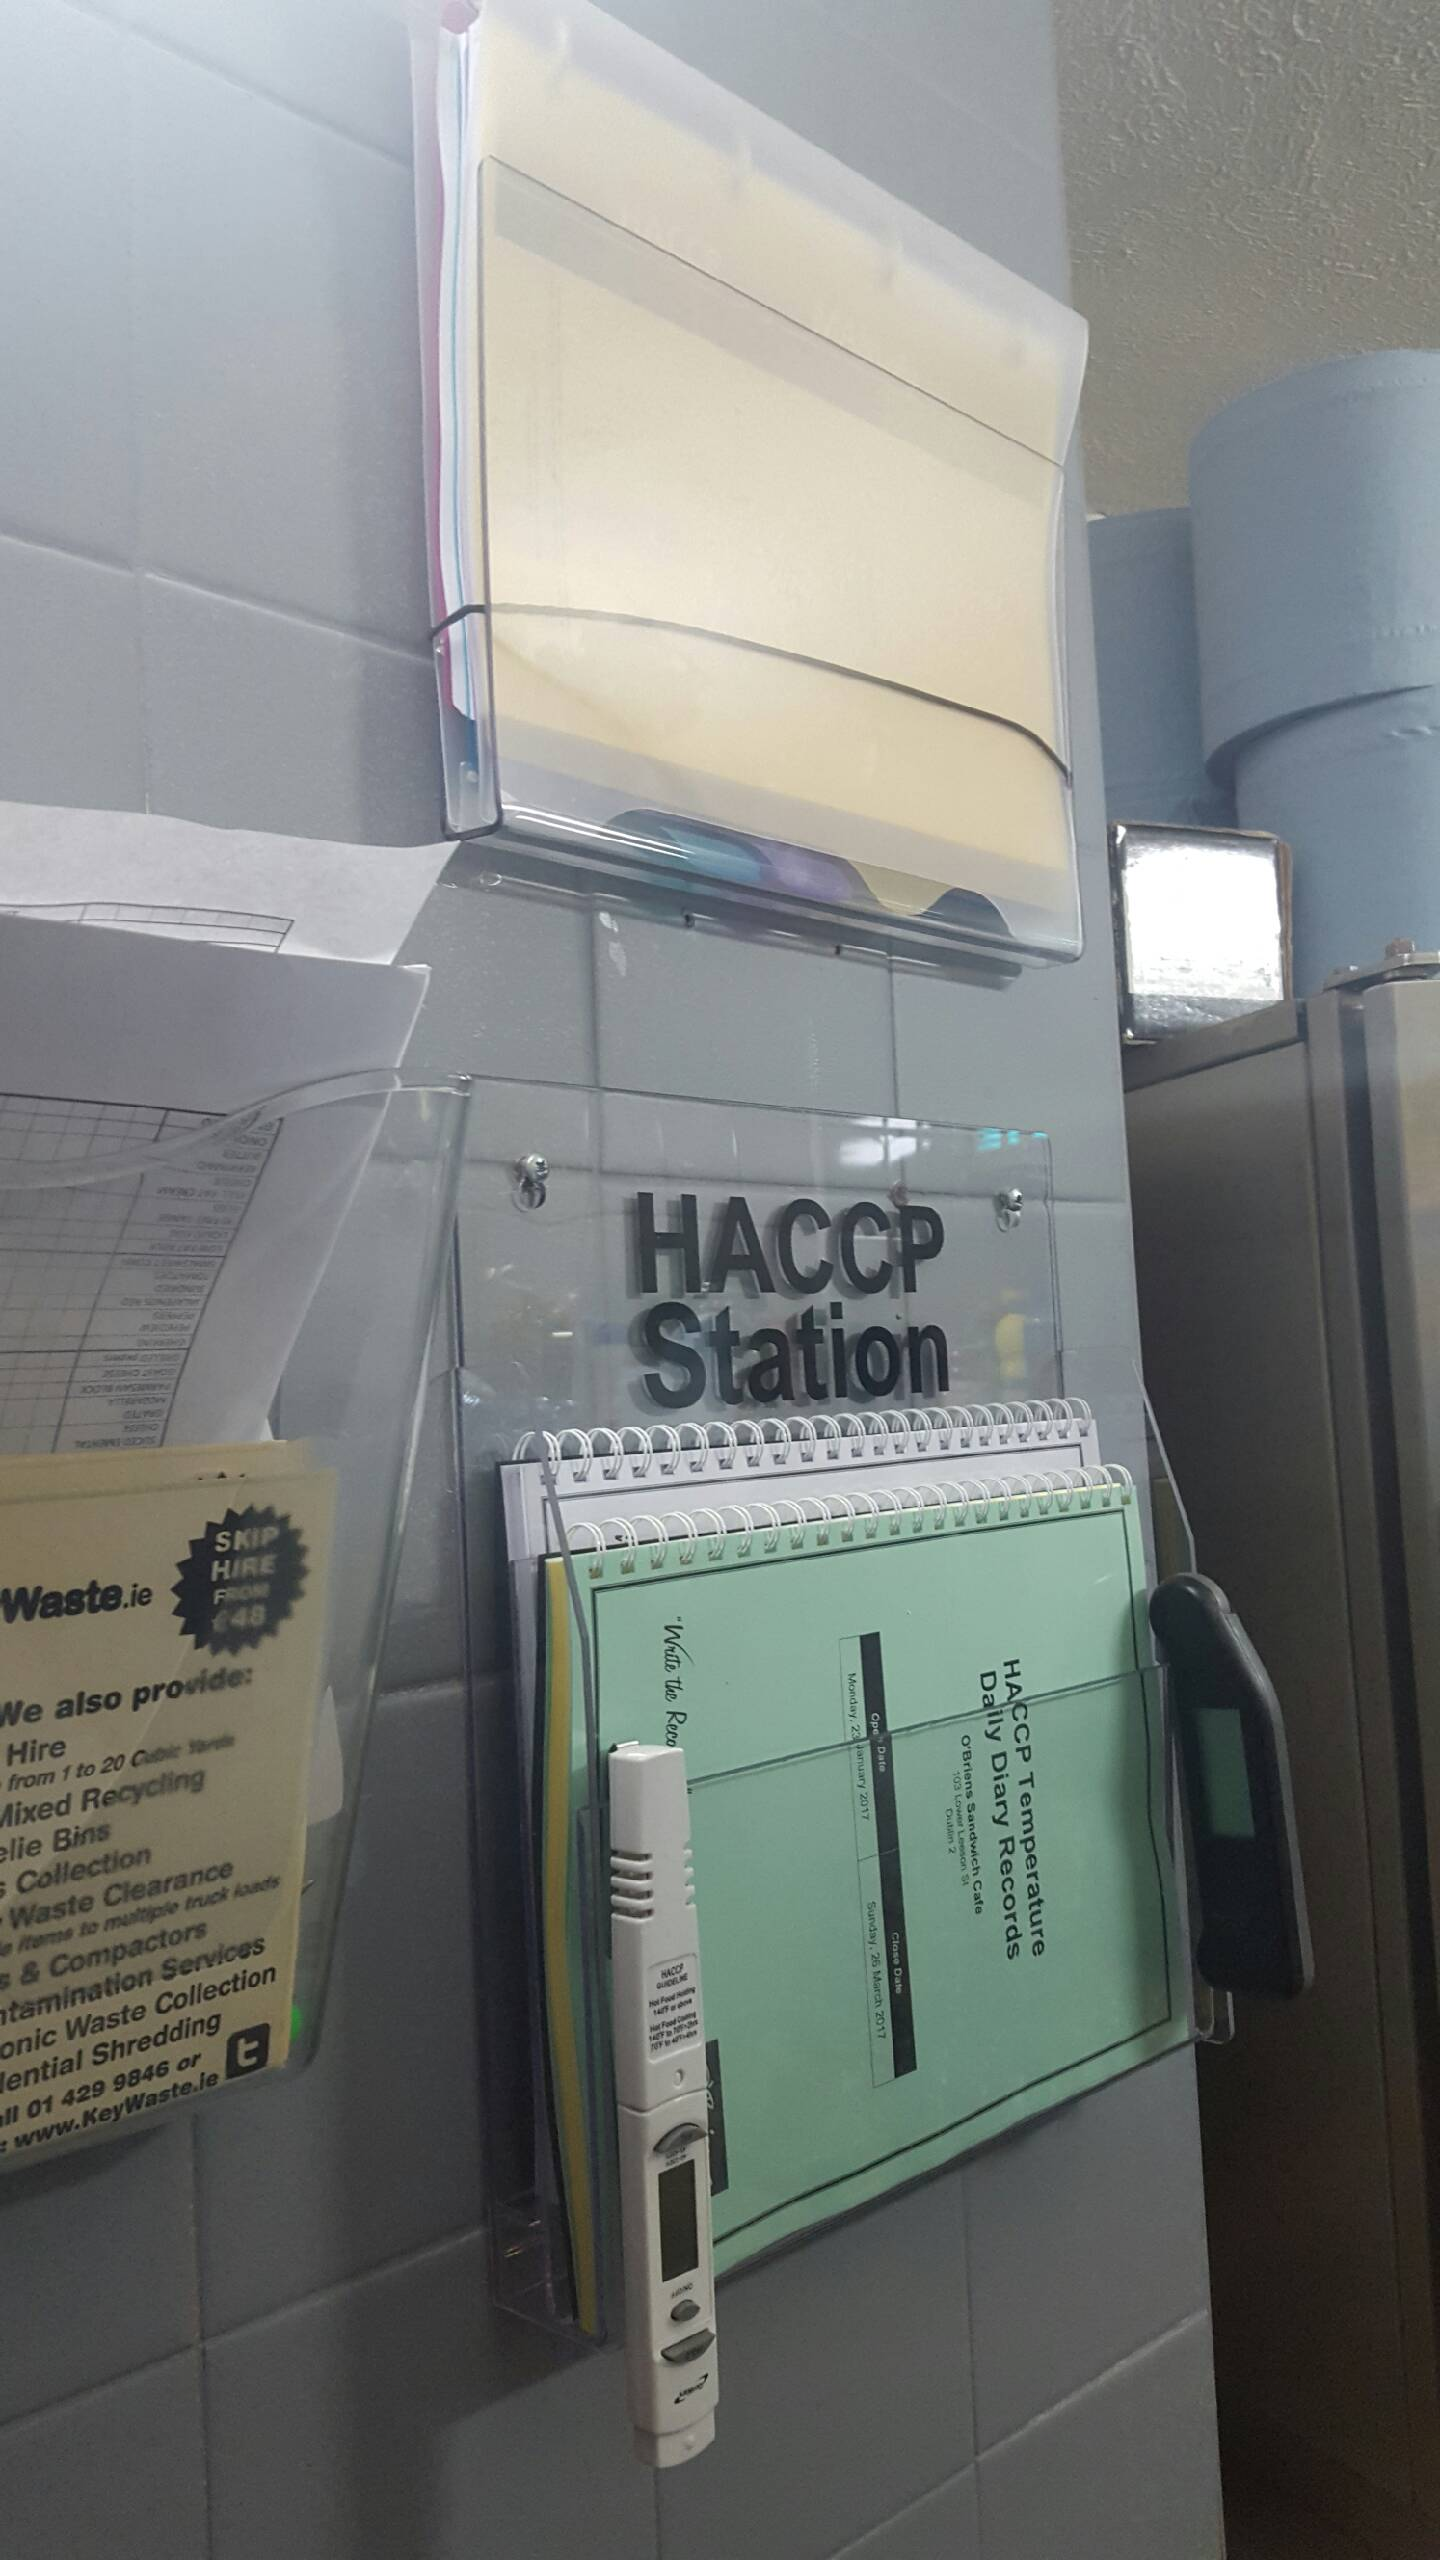 Photo of HACCP station on wall